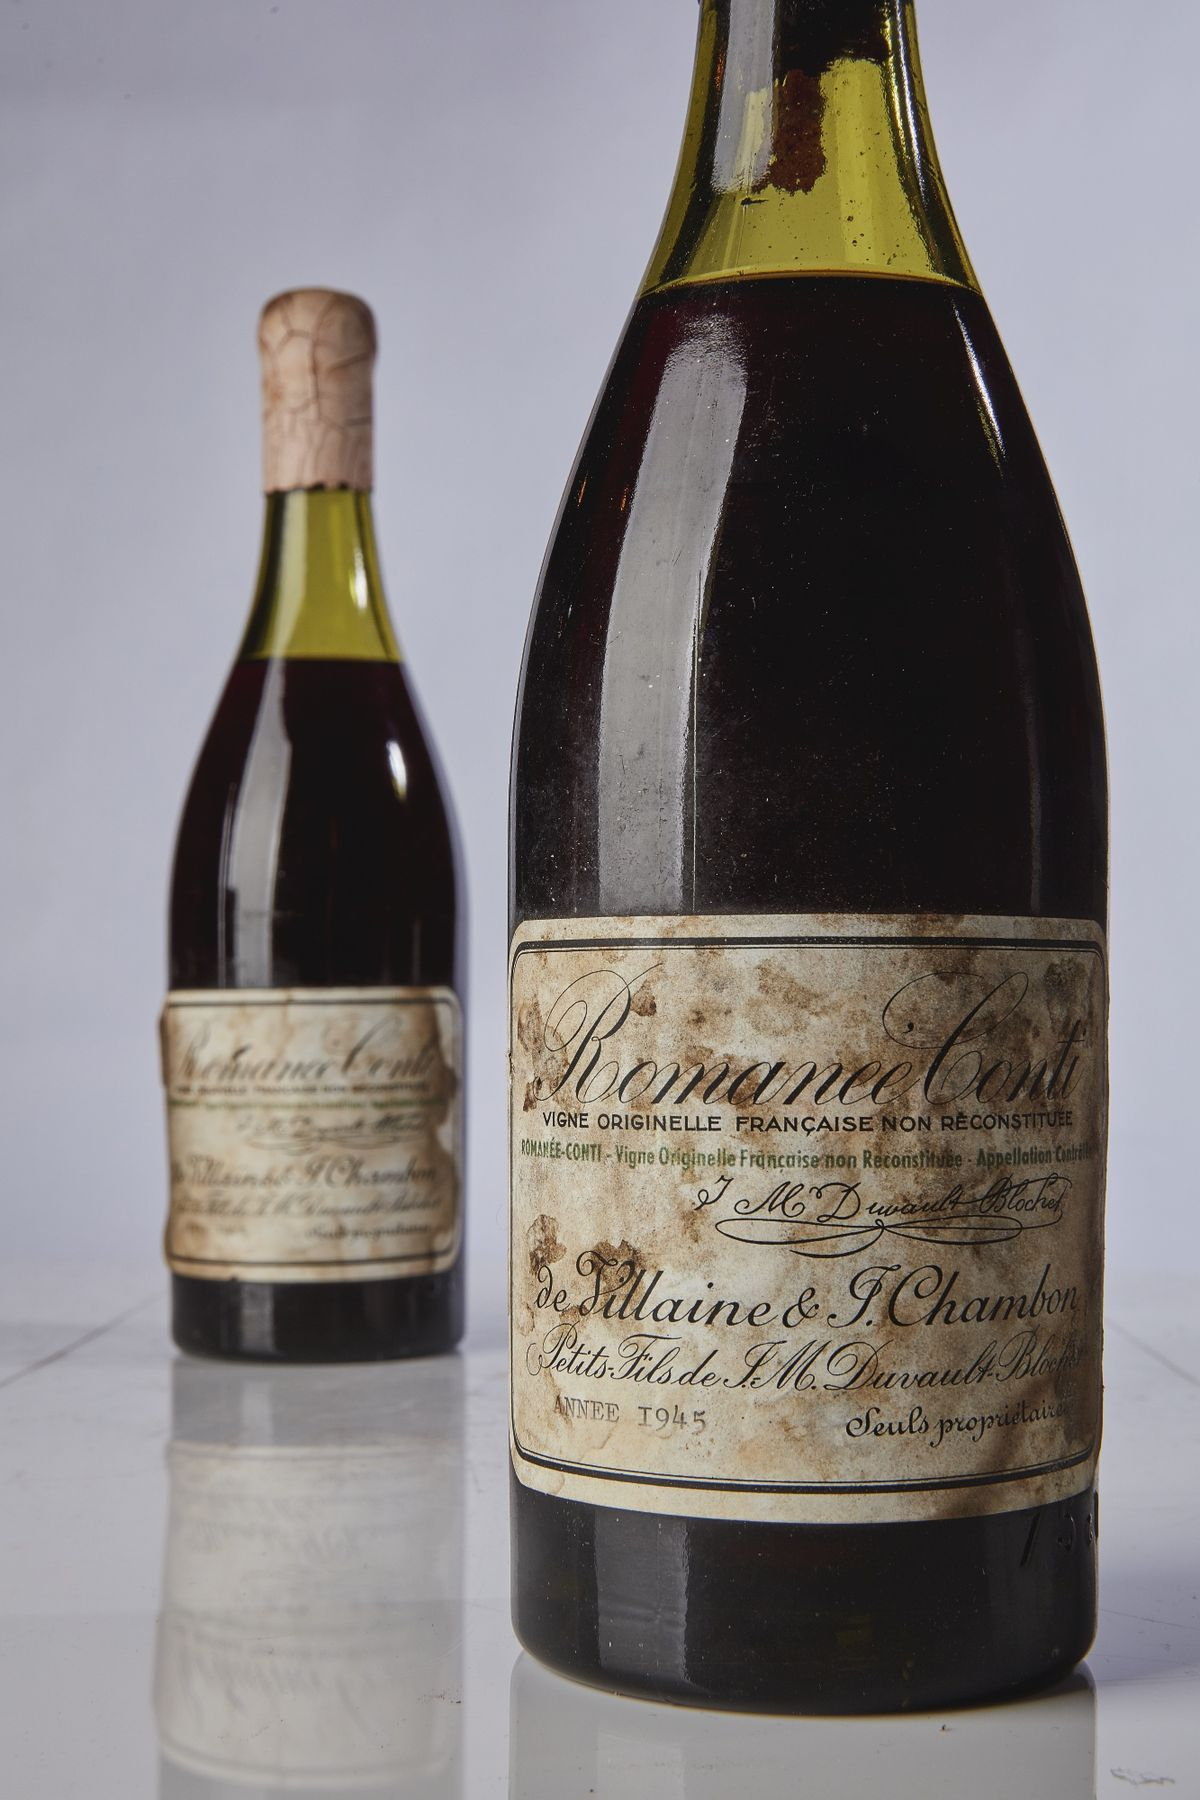 Romanee Conti, the most expensive bottle of wine